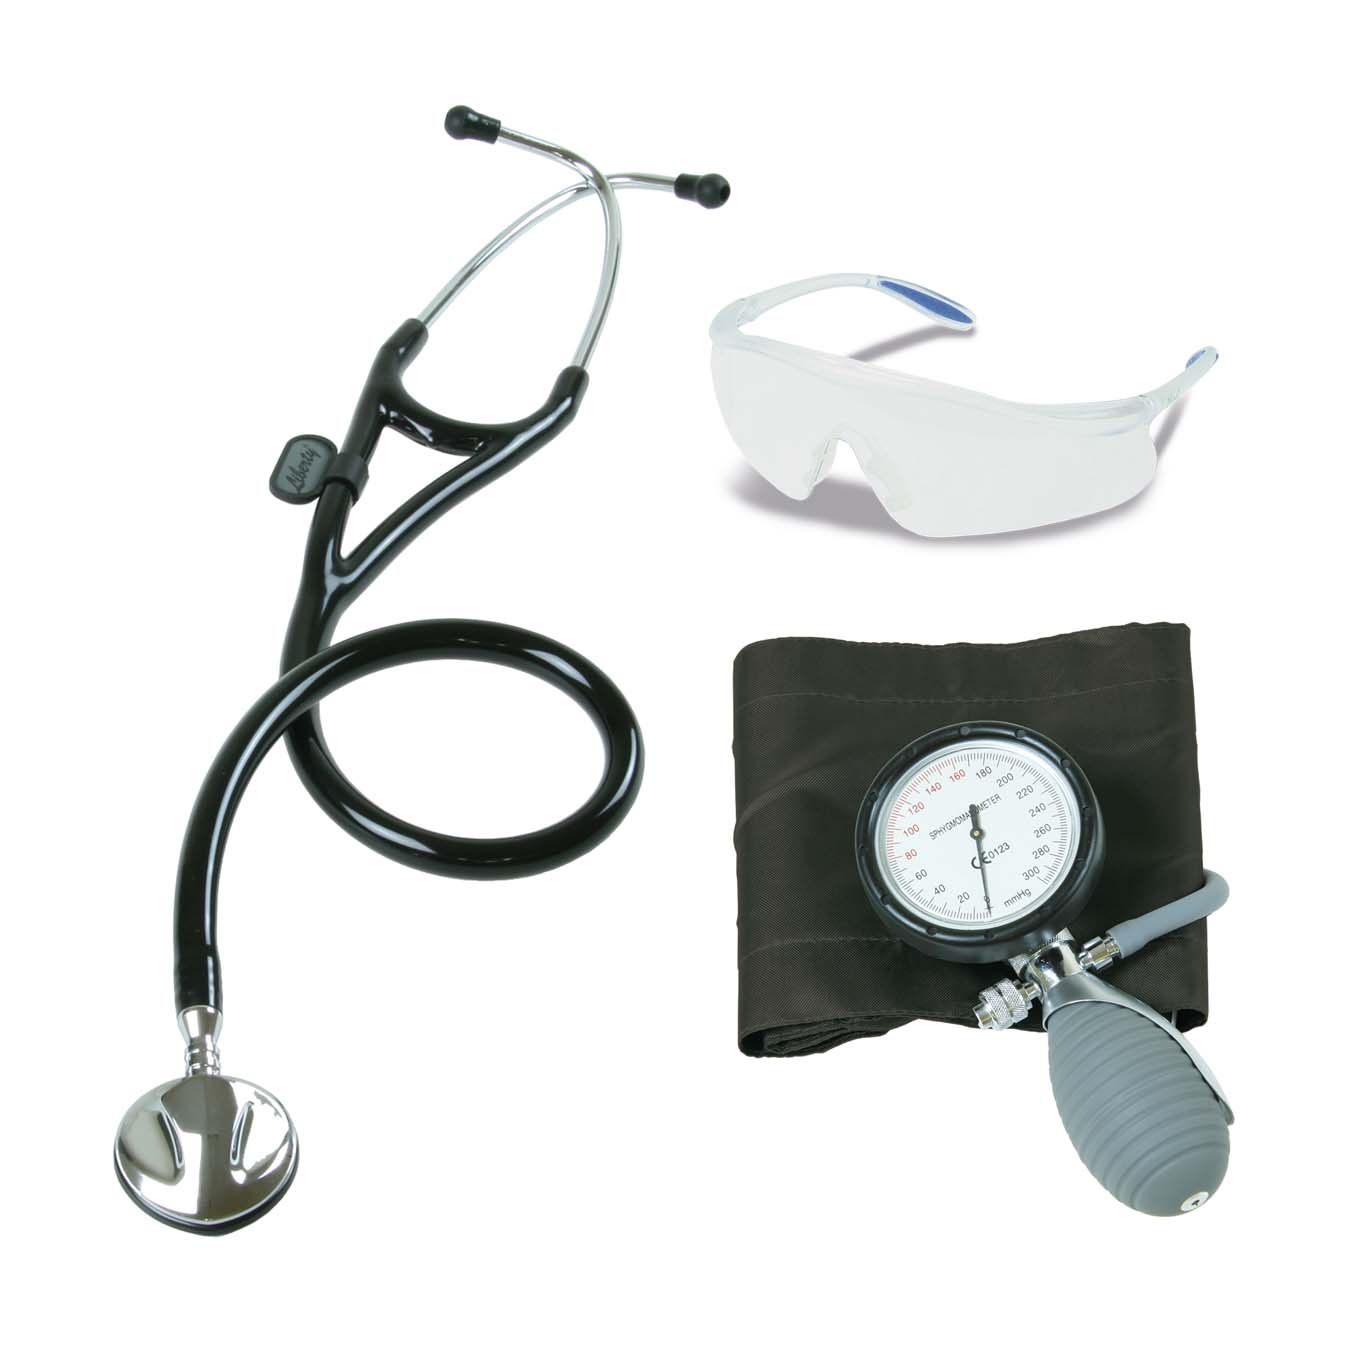 NKACOCAR3-1_Paramedic-Kit-Black-with-Cardiology-Stethoscope_ACU-2017_v1